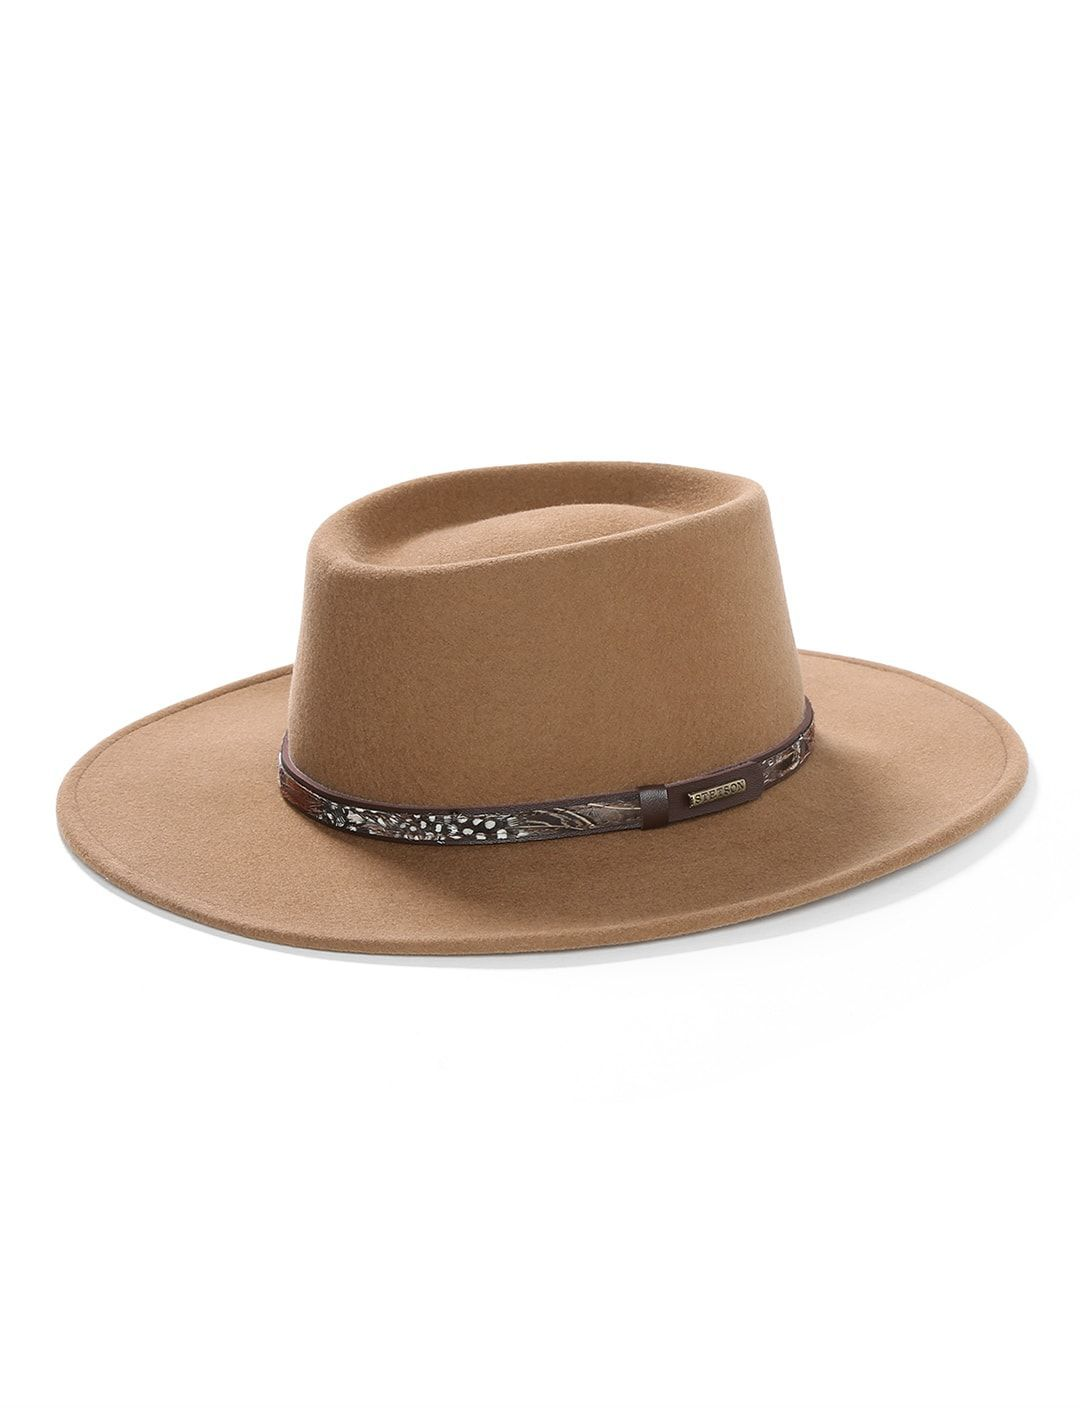 7285603edb417 Stetson Hats - Kelso Outdoor Hat | Hats in 2019 | Outdoor hats, Hats ...